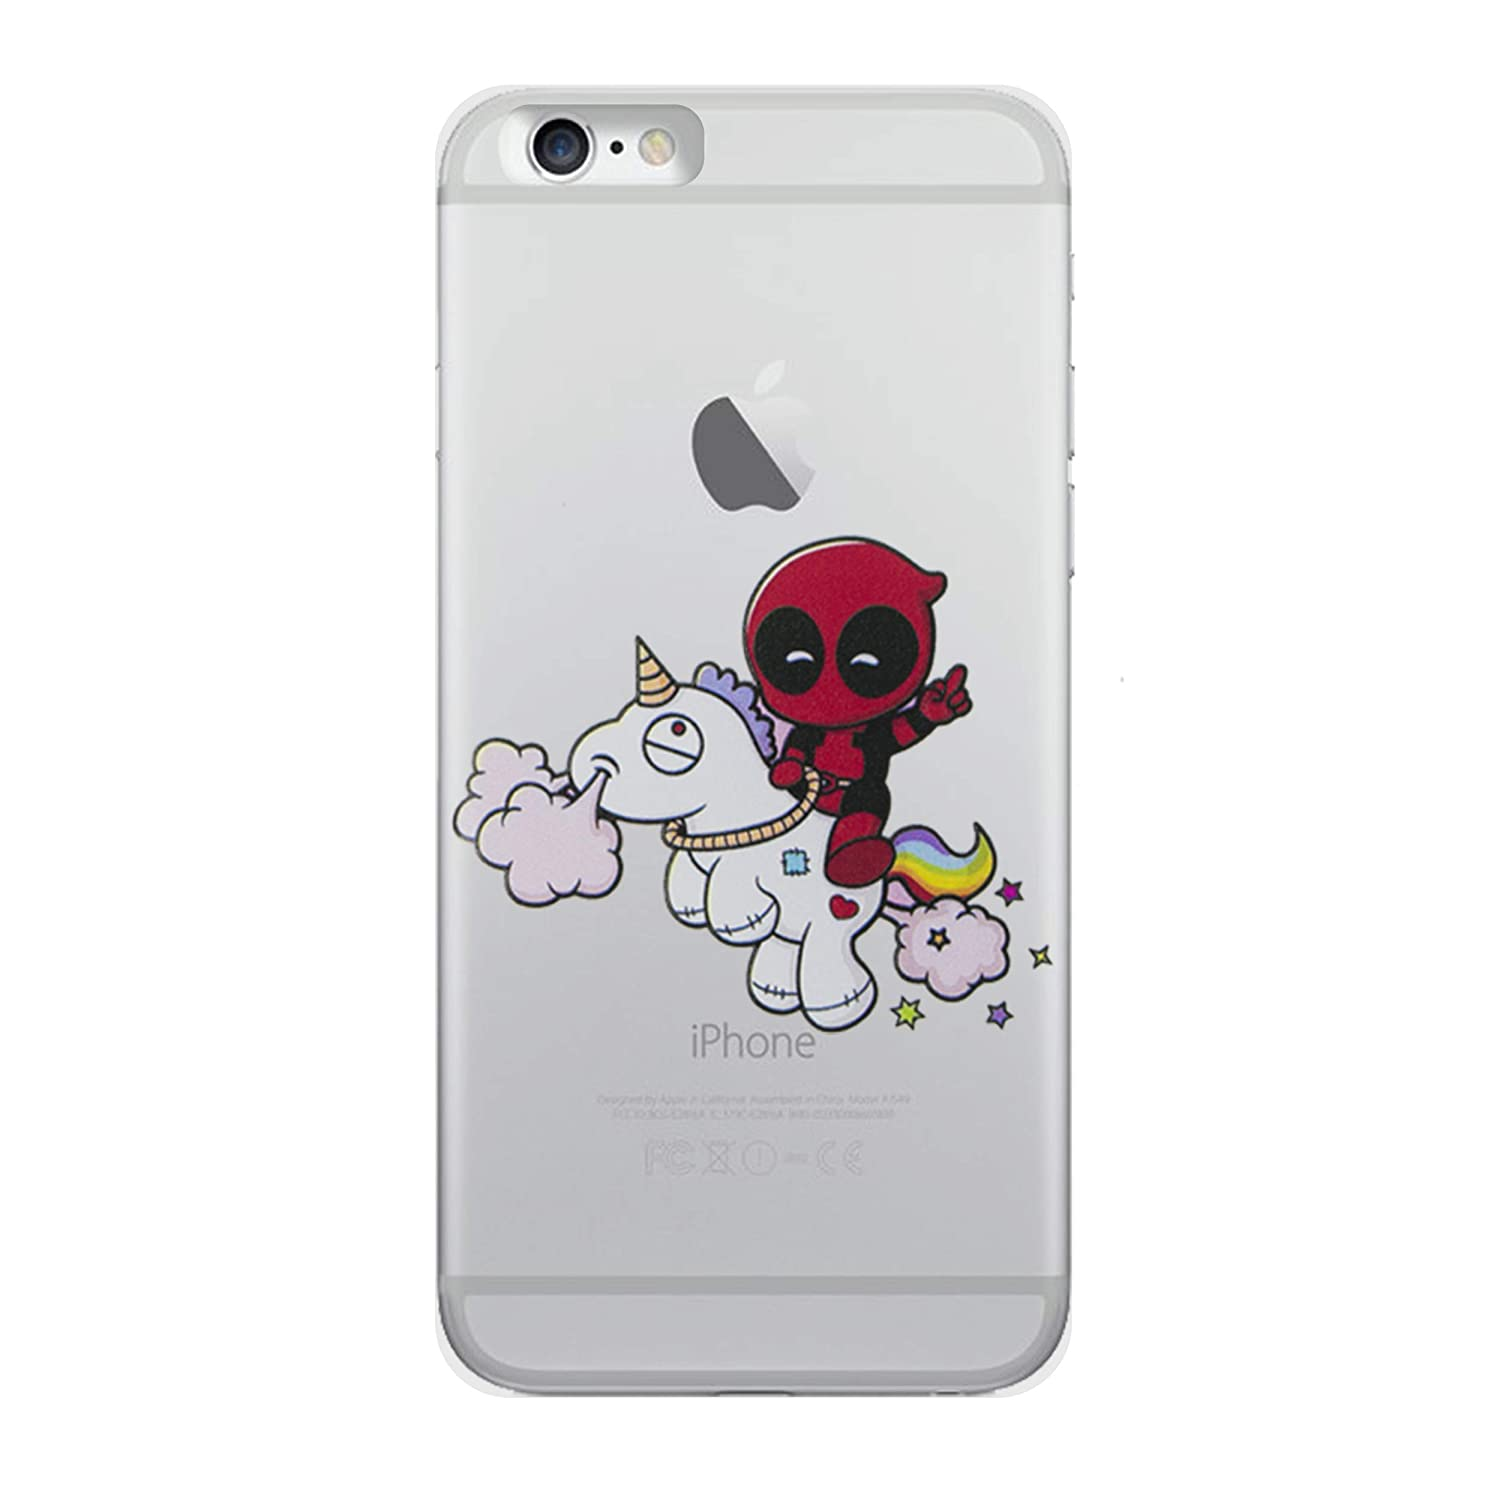 online store 547cb b8d15 iPhone 5/5s Deadpool Silicone Phone Case / Gel Cover for Apple iPhone 5s 5  SE / Screen Protector & Cloth / iCHOOSE / Unicorn Ride